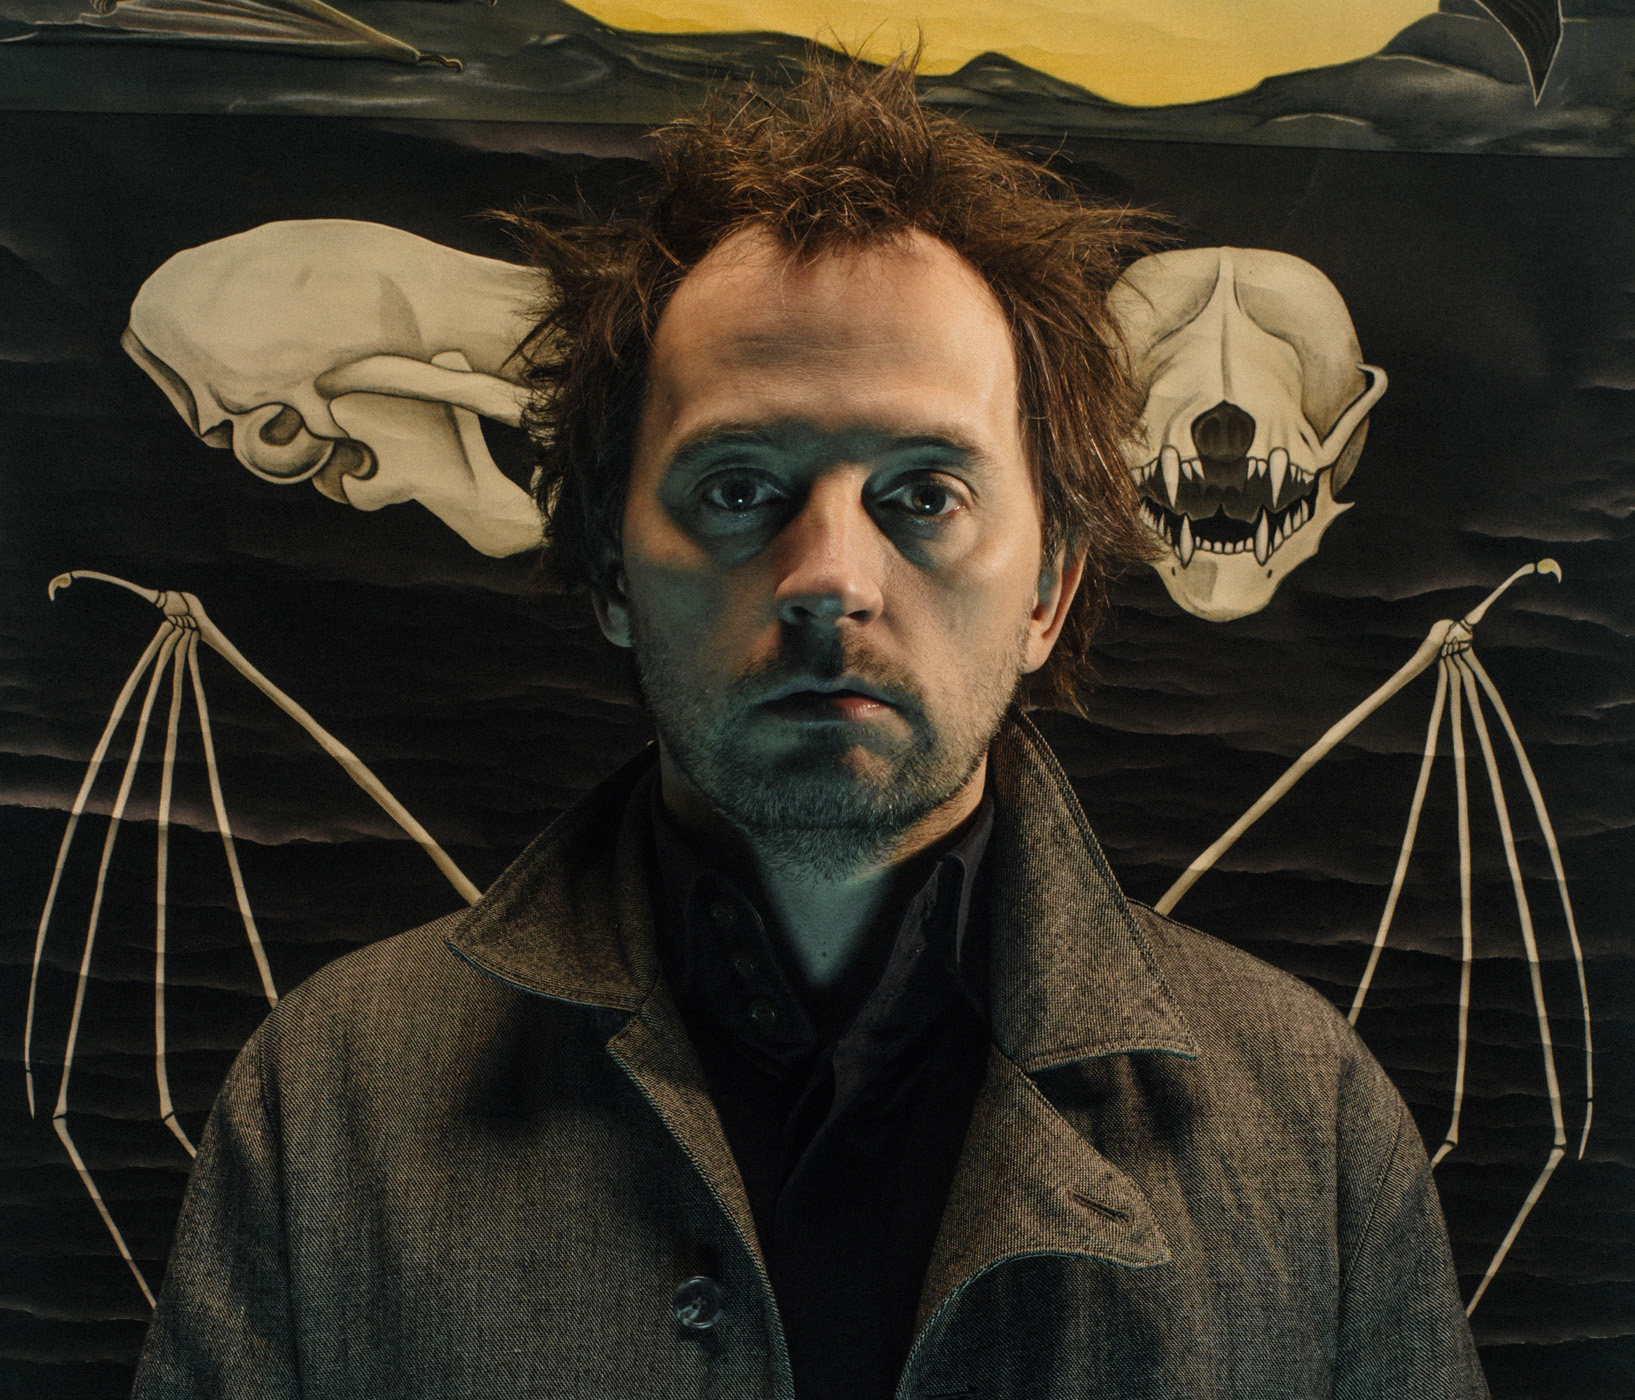 """Squarepusher Shares New Song """"Damogen Furies"""" from his forthcoming album """"Stor Eiglass,"""""""